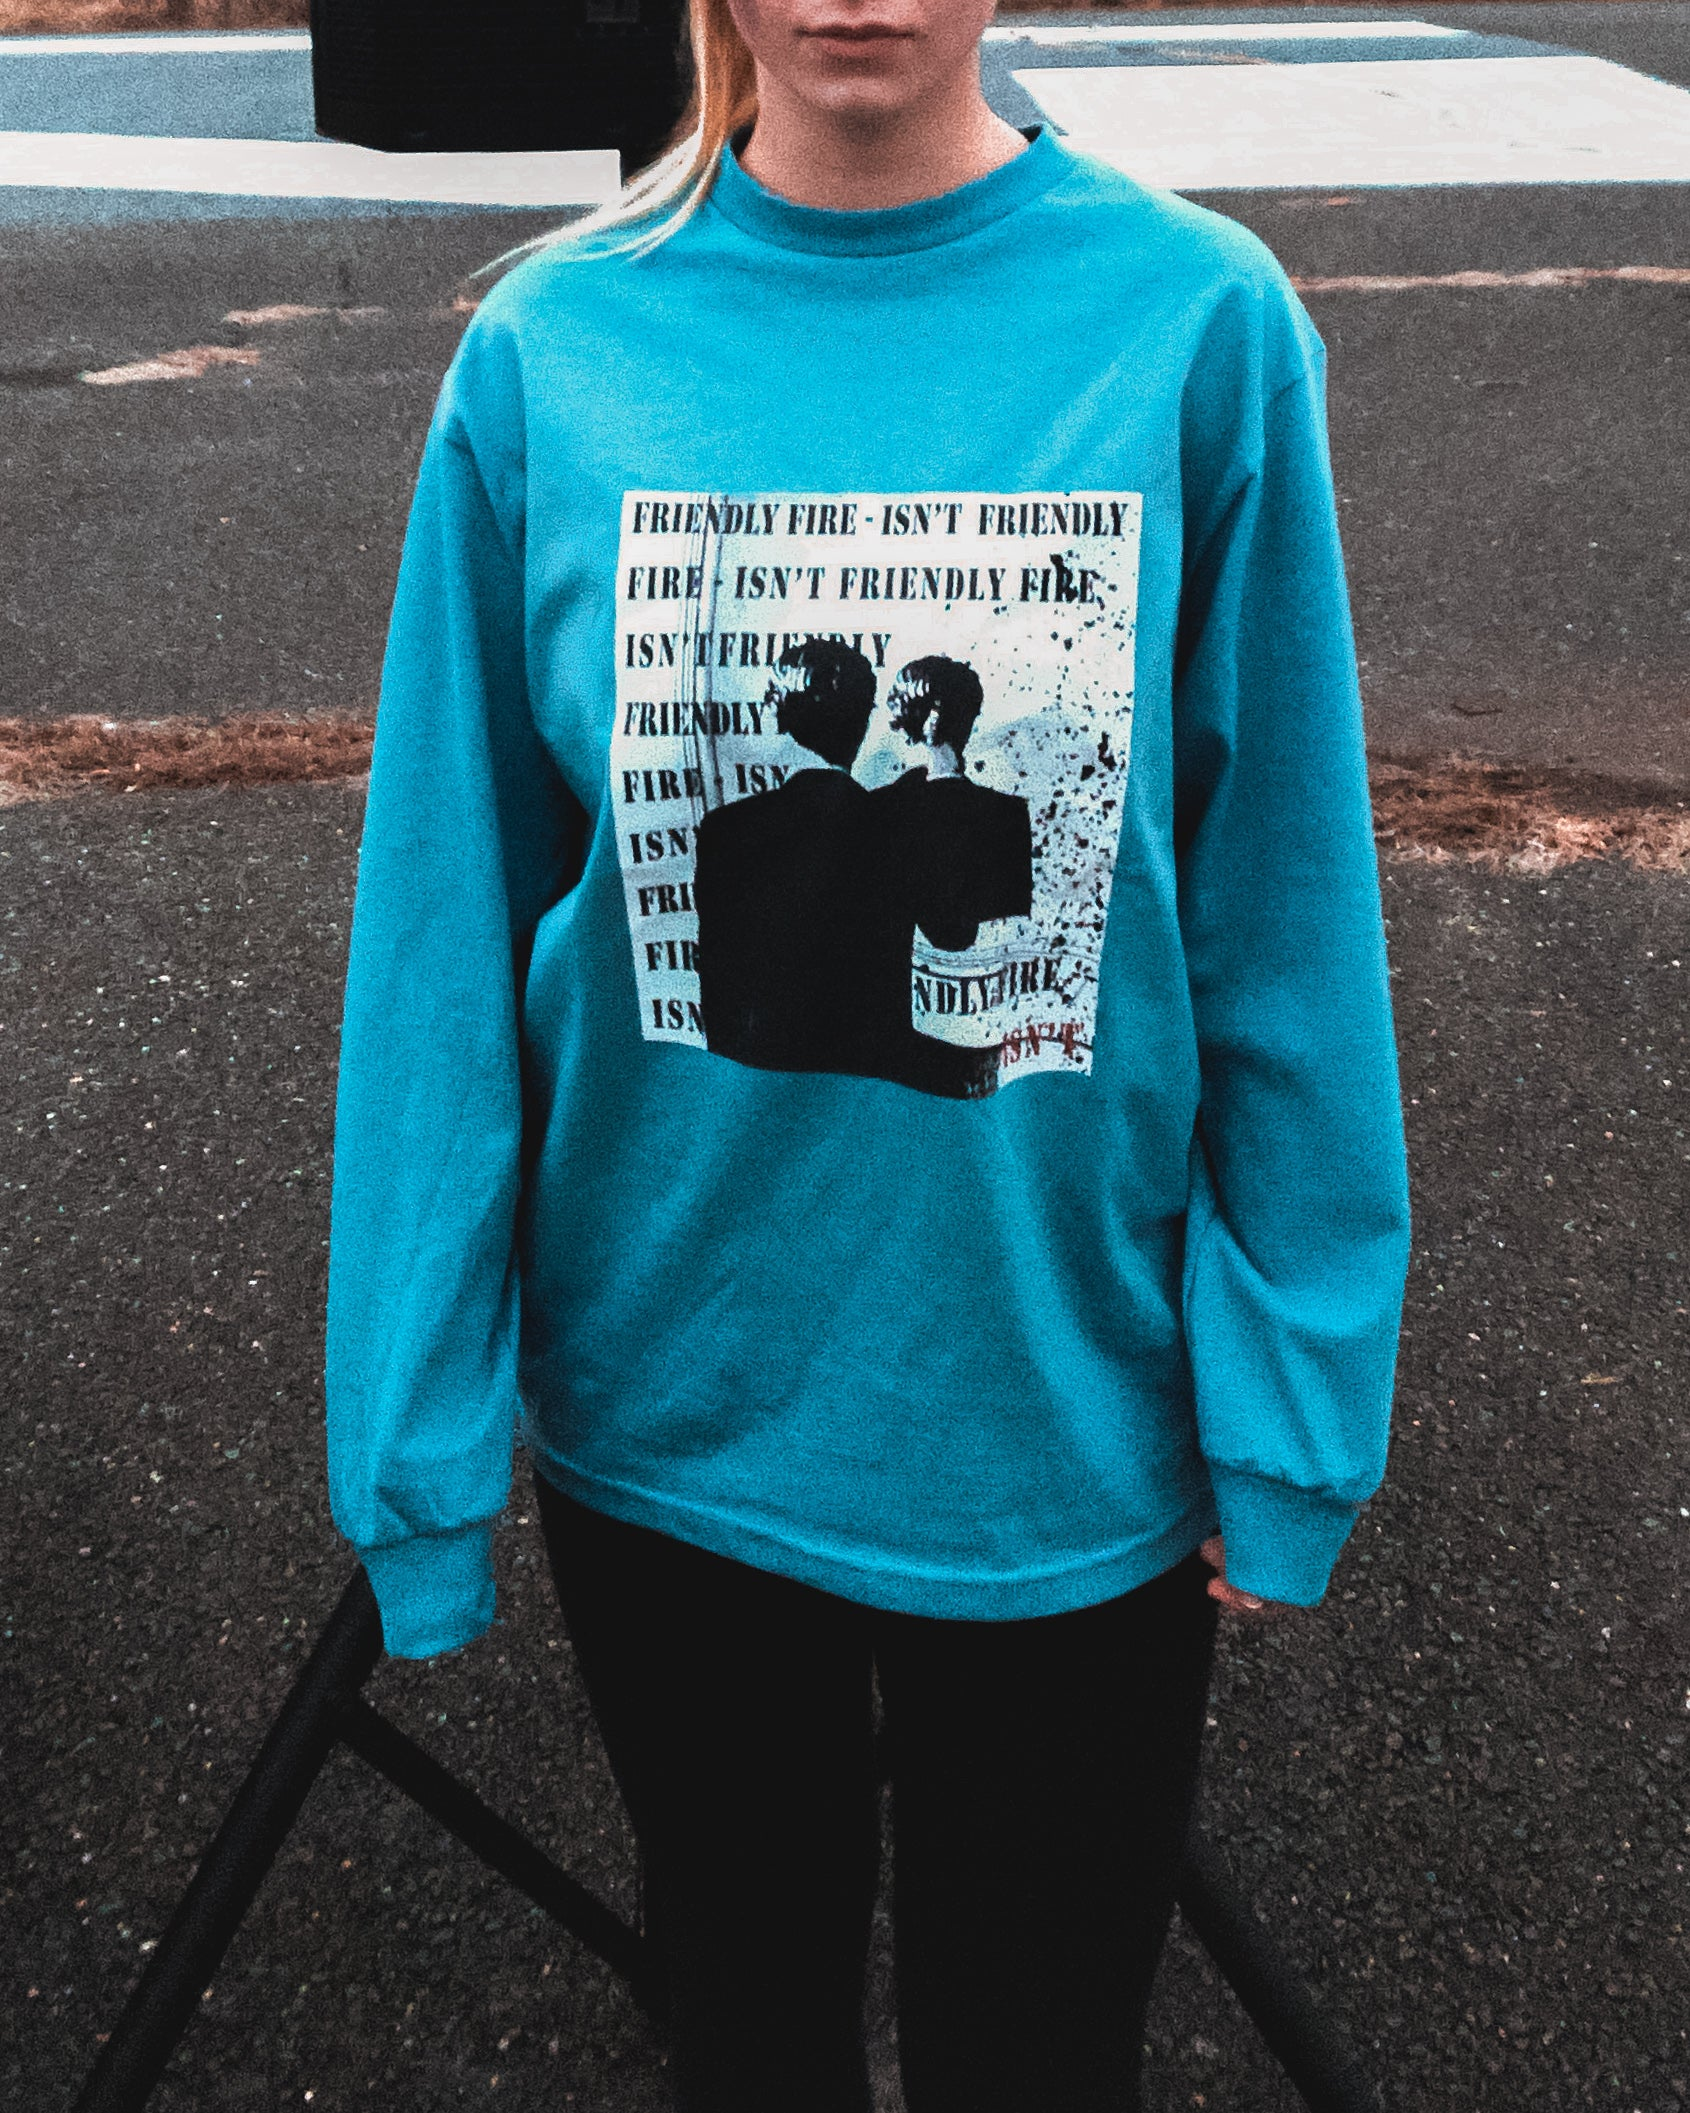 'Friendly Fire' Long Sleeved Tee